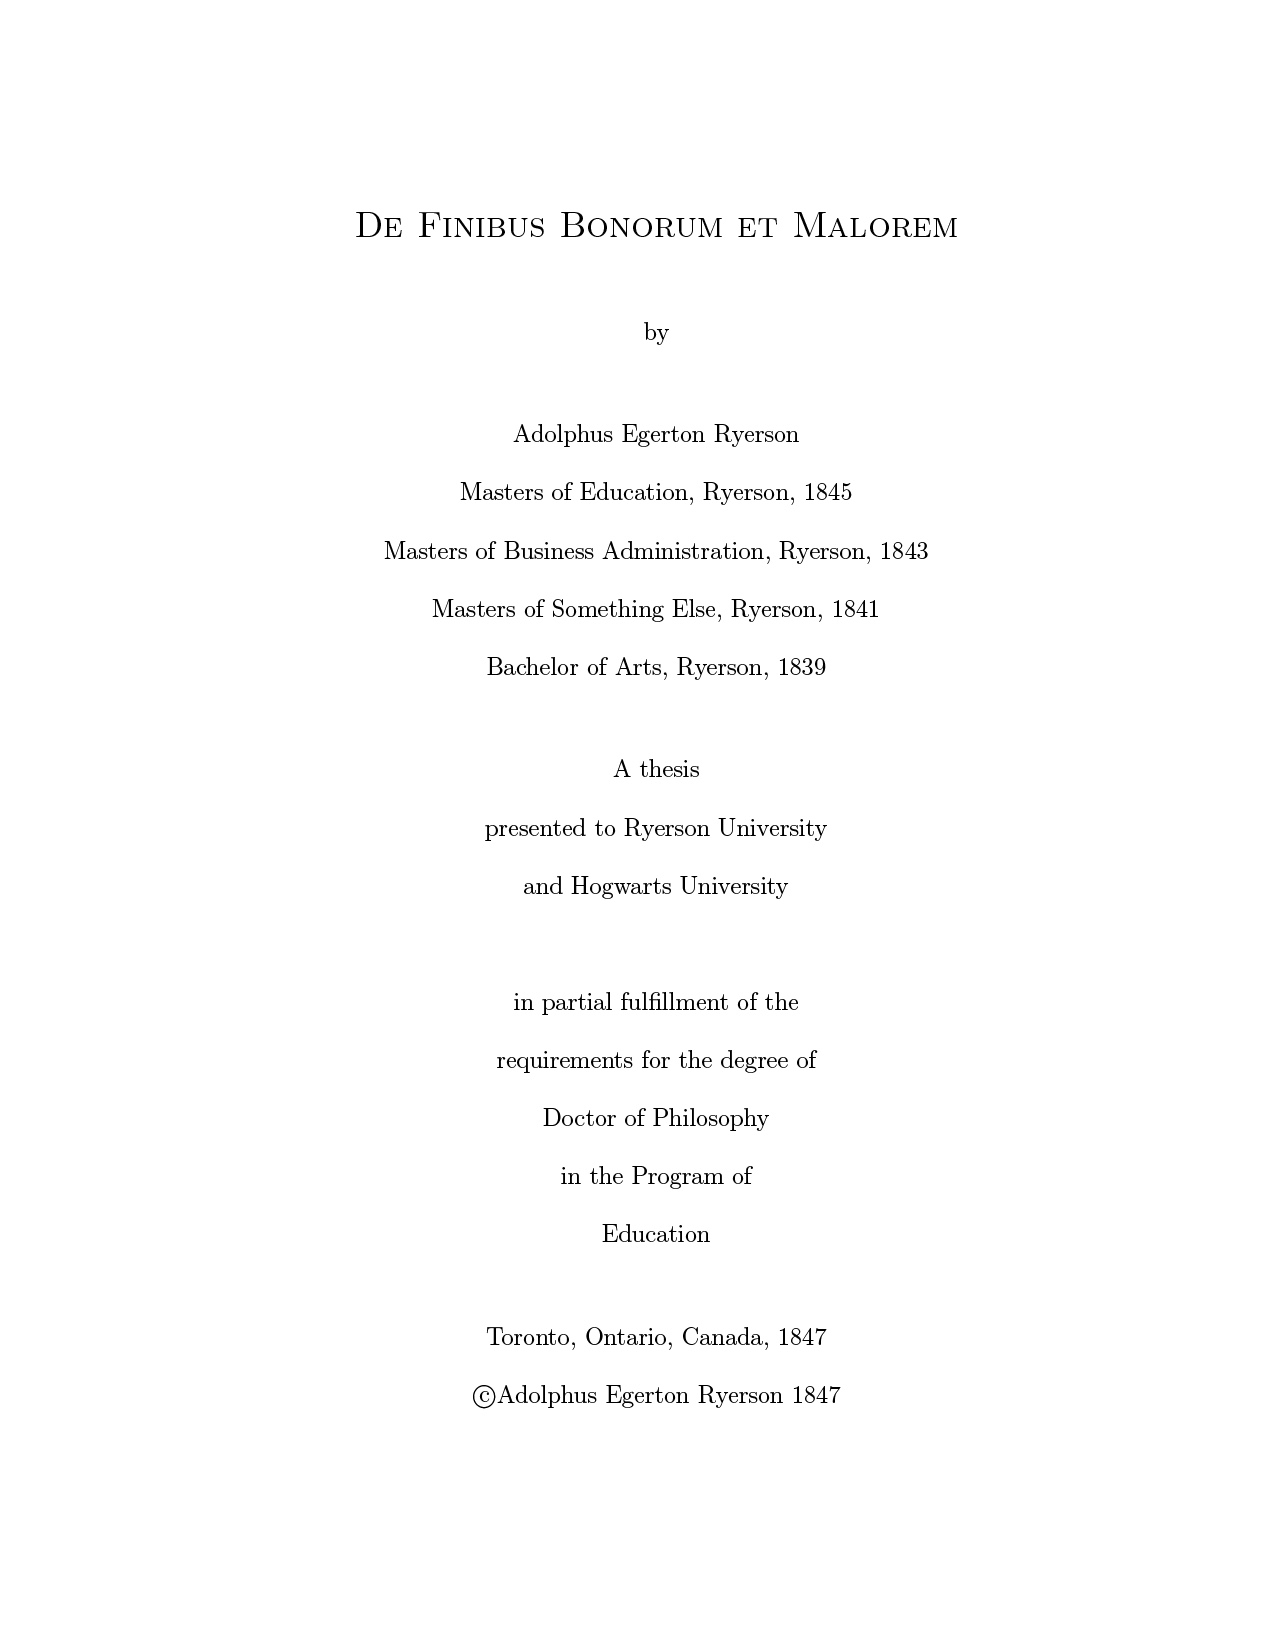 Mcmaster thesis latex template